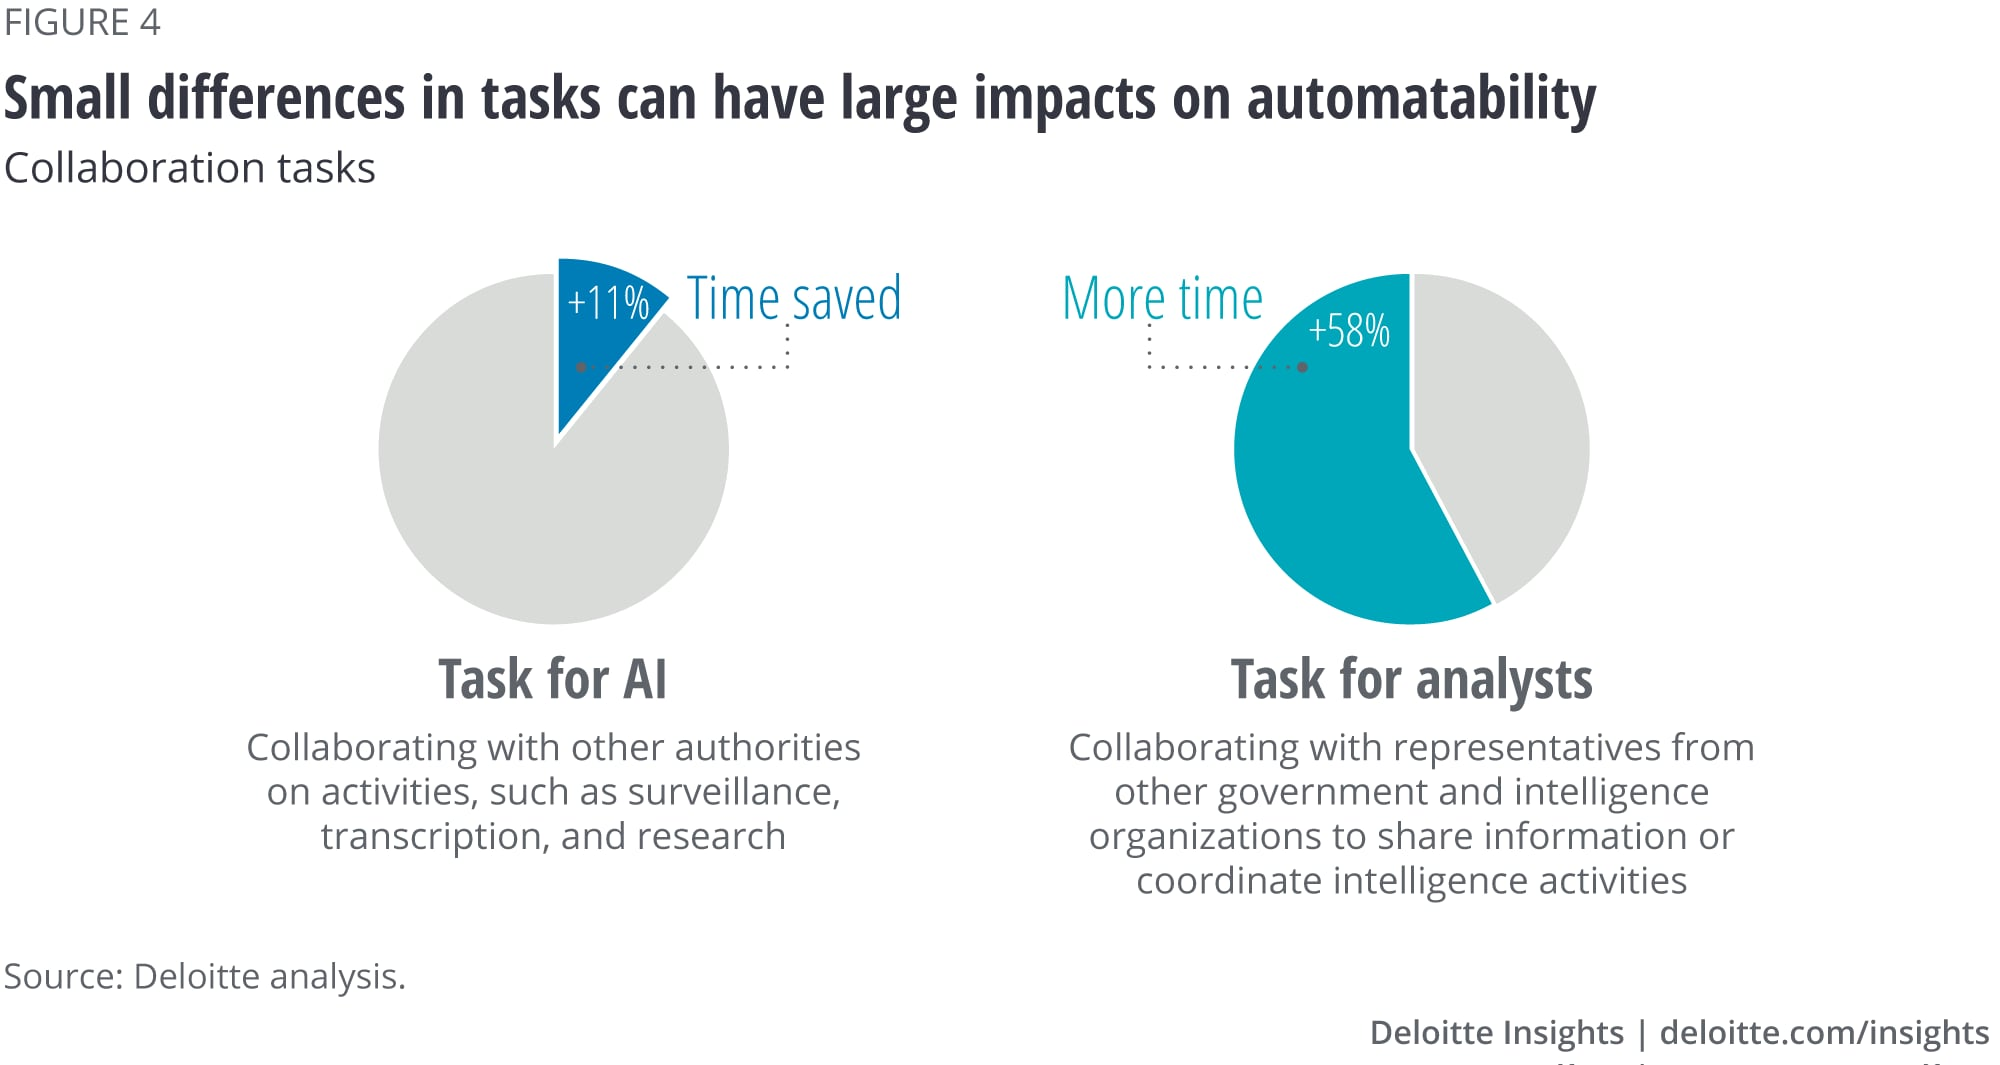 Small difference in tasks can have large impacts on automatability